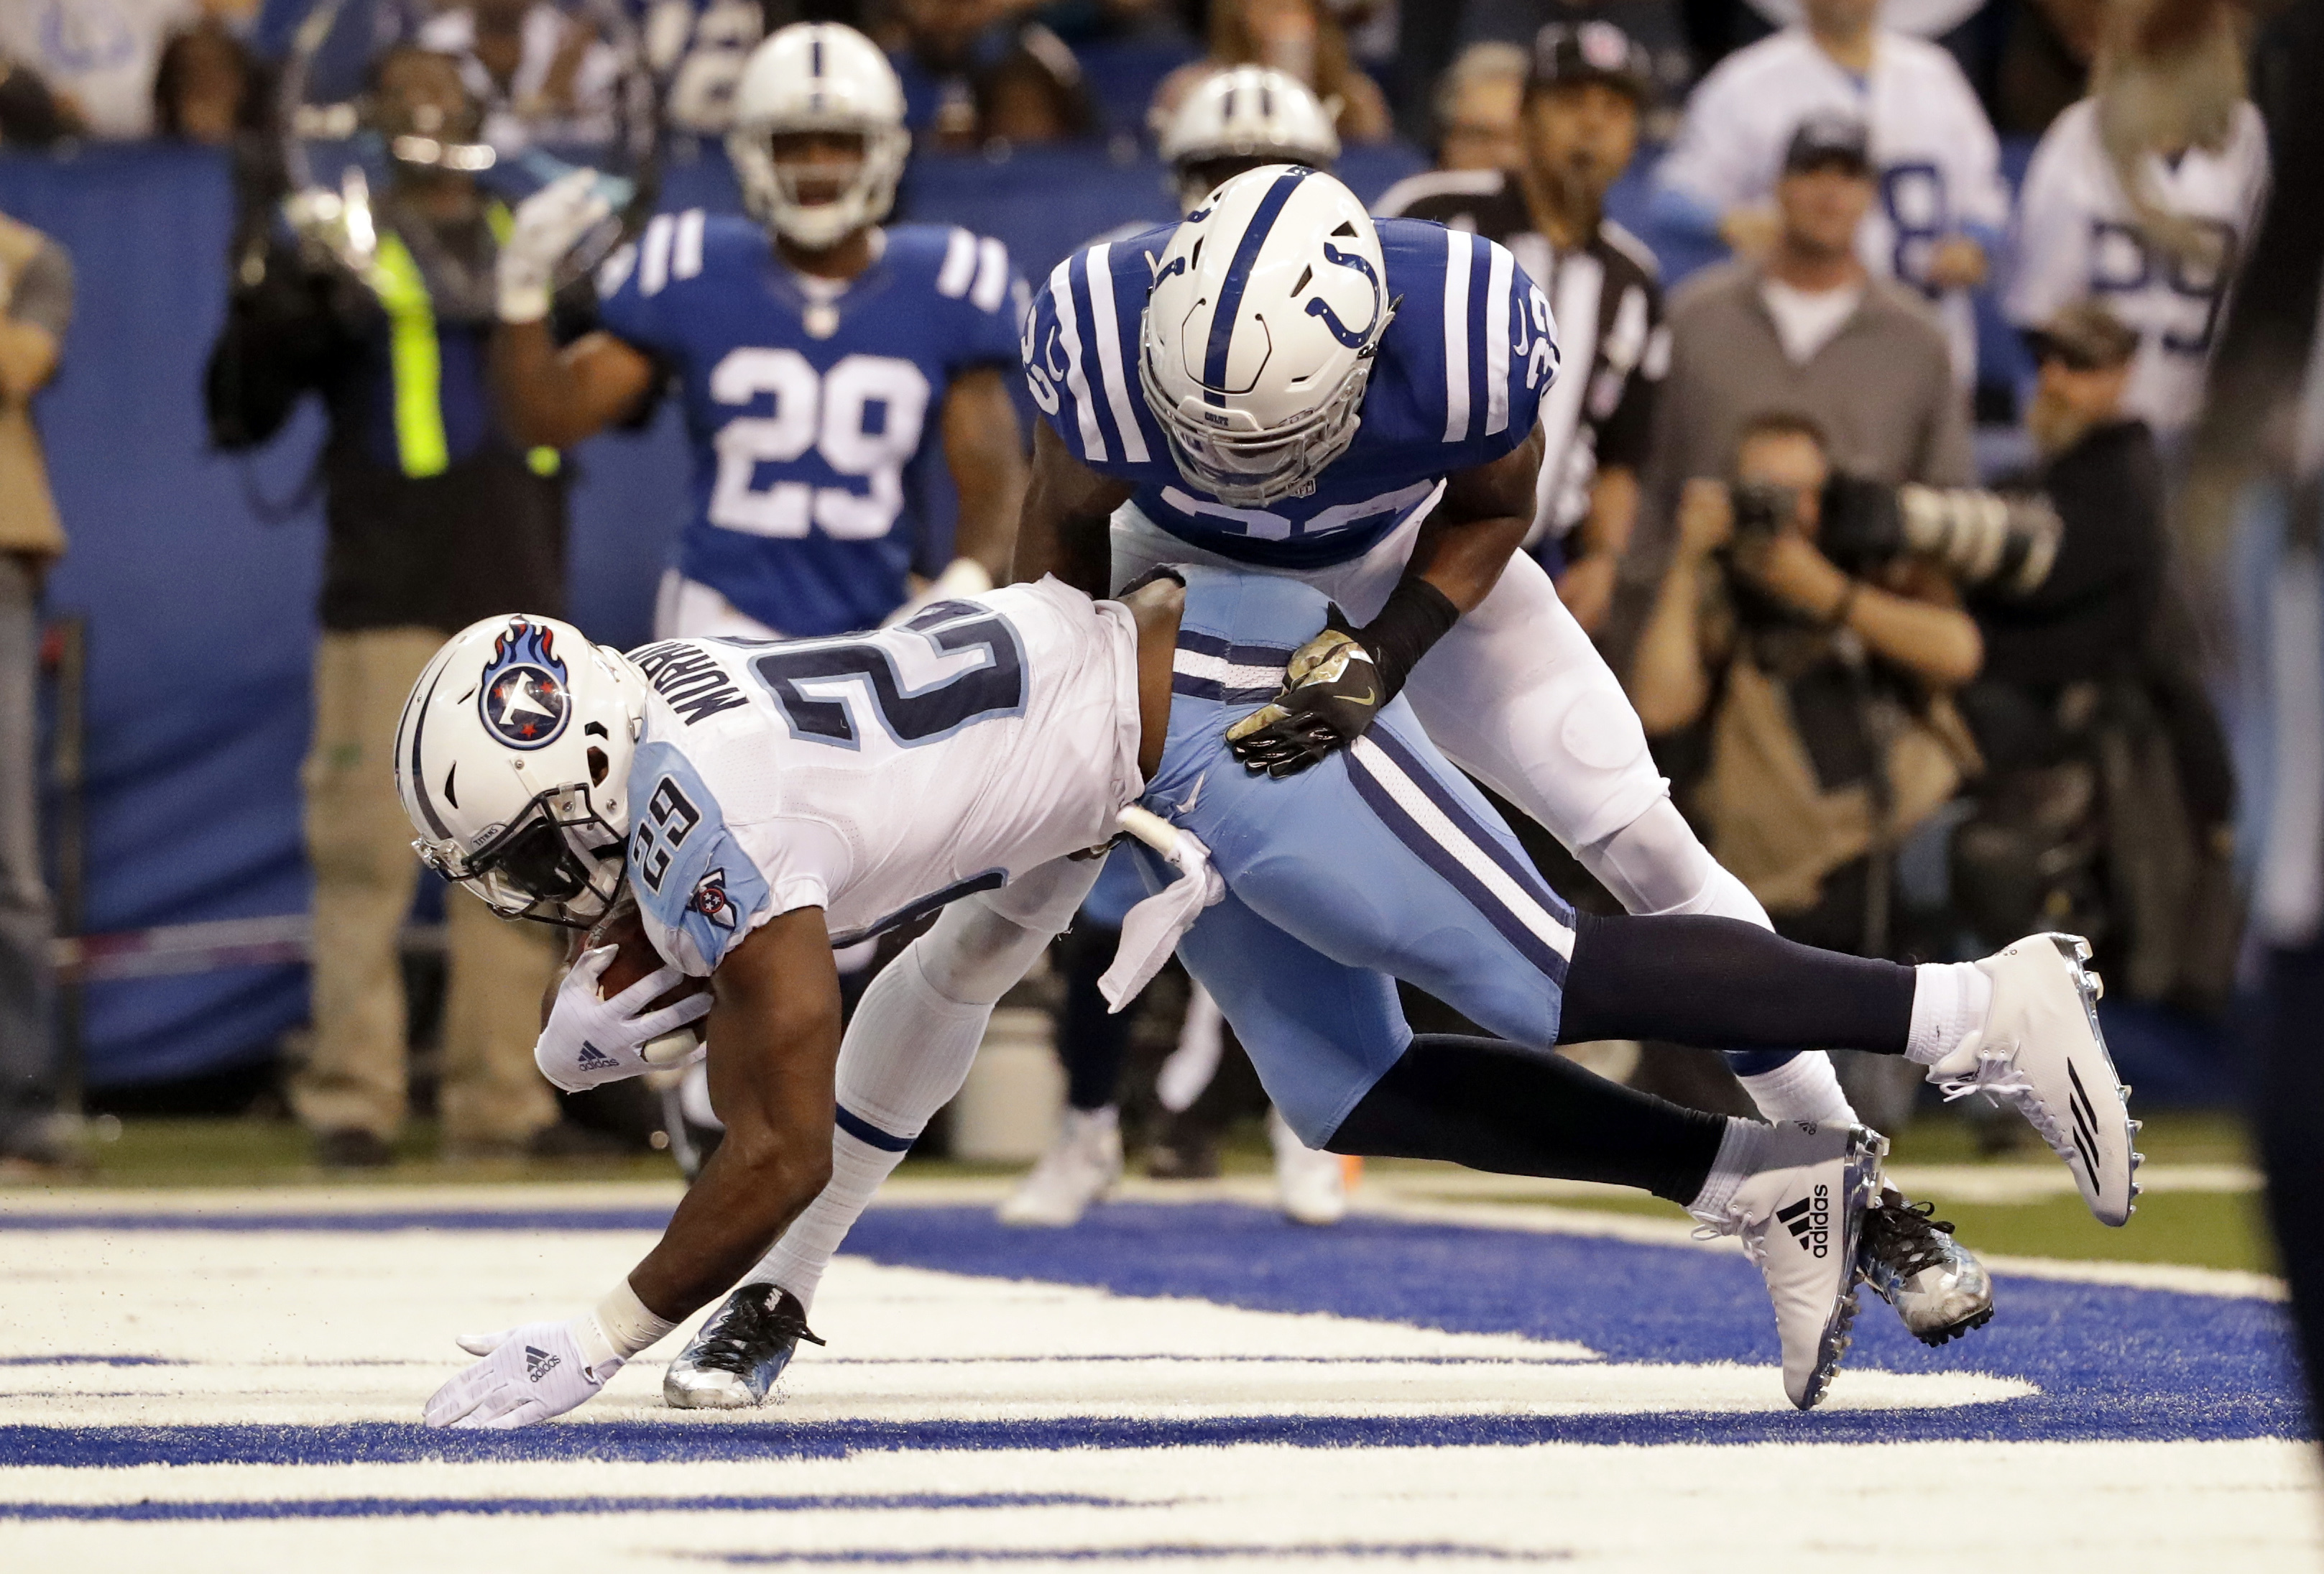 Tennessee Titans running back DeMarco Murray (29) makes a catch under Indianapolis Colts safety T.J. Green (32) for a touchdown during the first half of an NFL football game in Indianapolis, Sunday, Nov. 20, 2016. (AP Photo/Jeff Roberson)